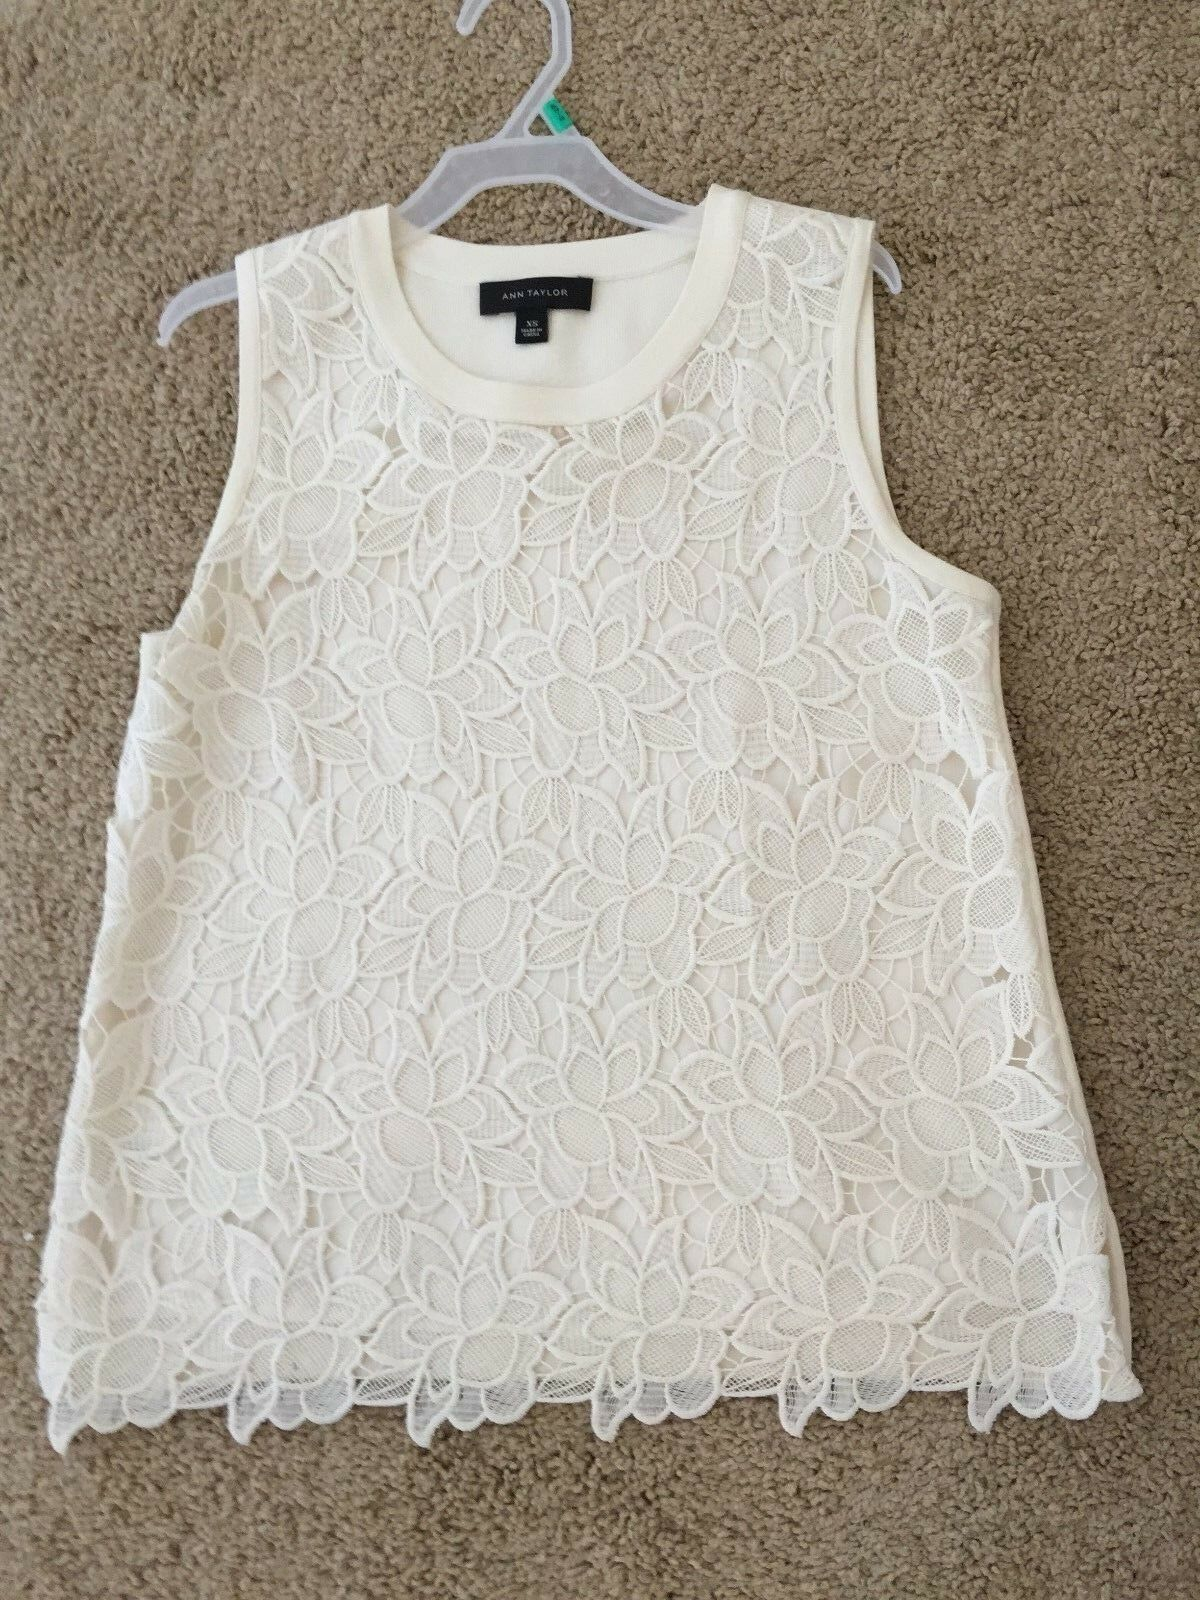 Ann Taylor Lace Overlay Off Weiß Top  Sweater